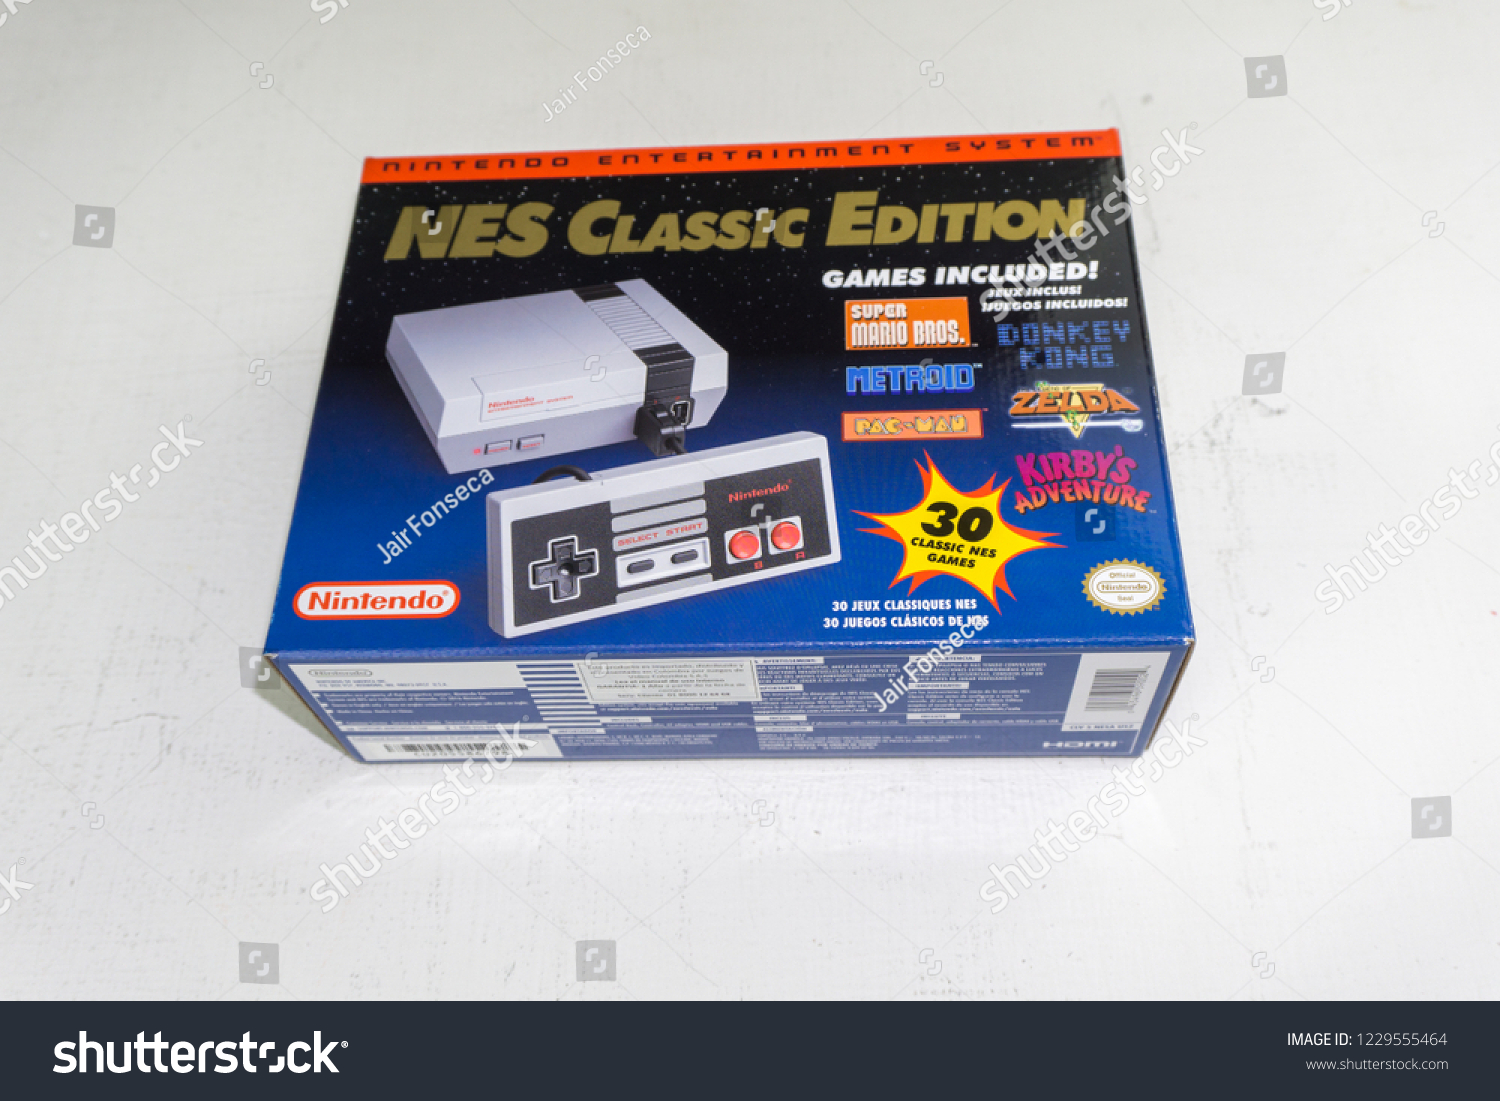 Nintendo Nes Classic Edition Video Game Stock Photo Edit Now